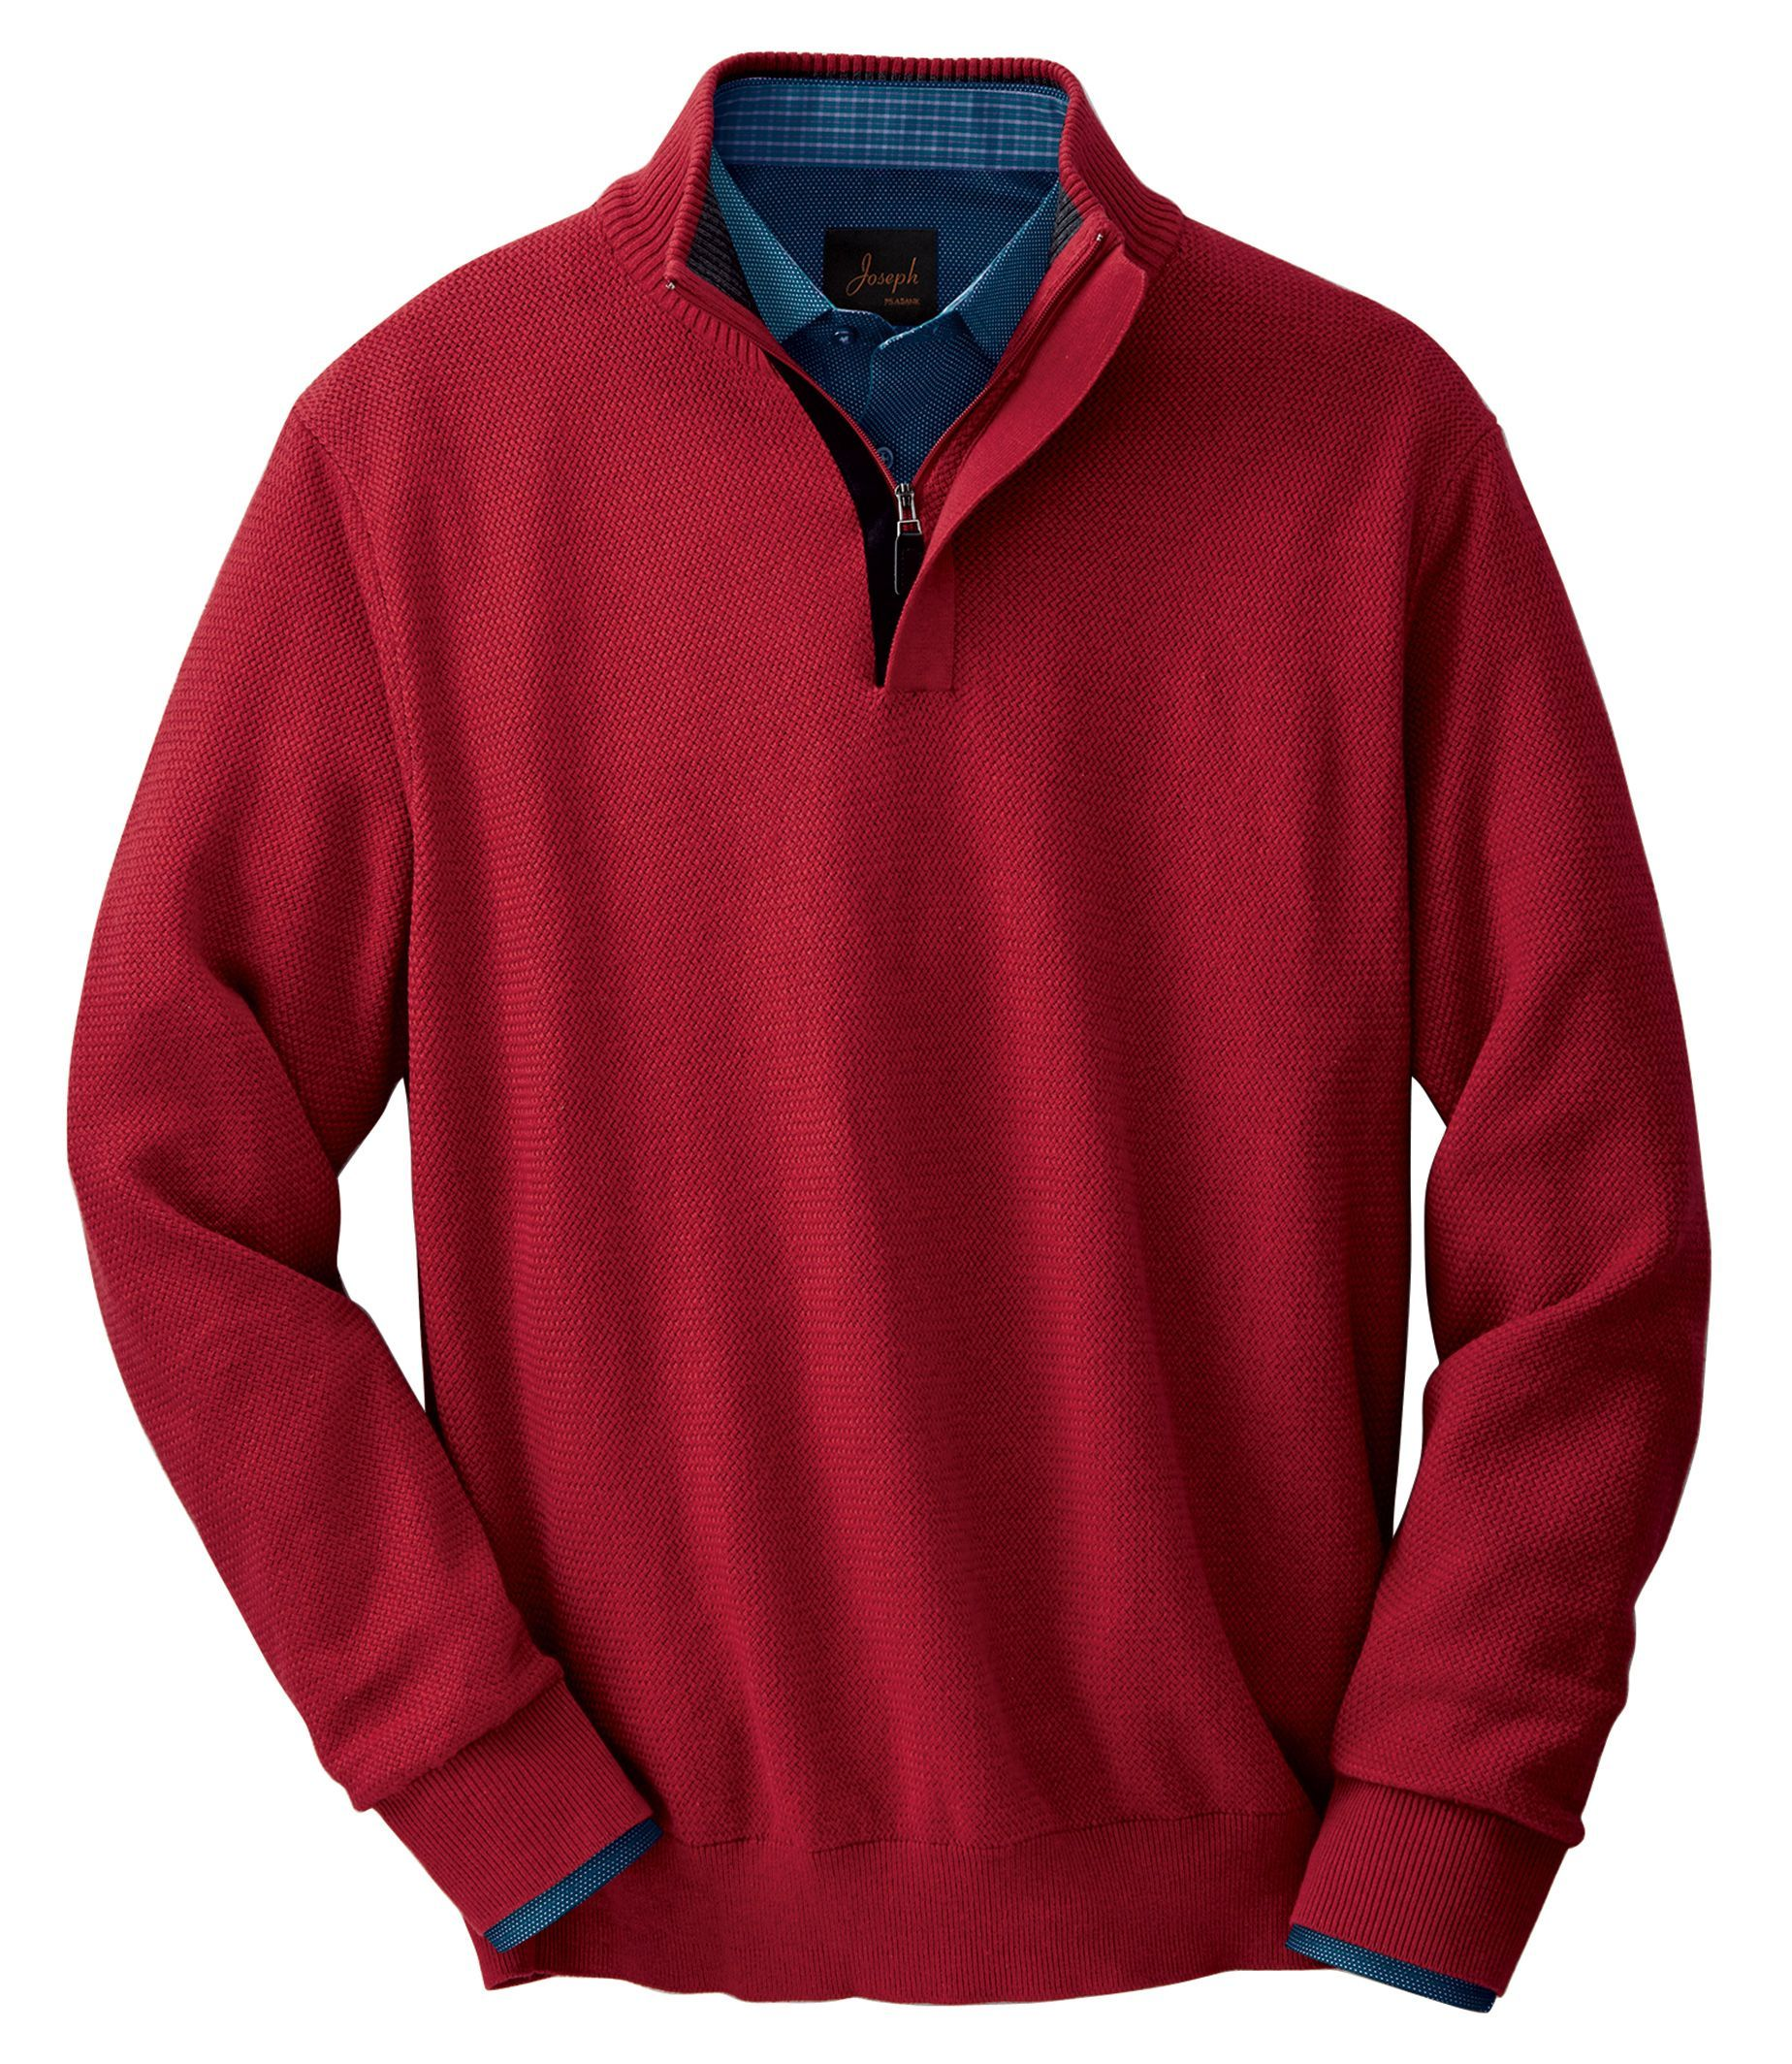 Check This Out Executive Collection Cotton Quarter Zip Sweater From Jos A Bank Clothiers Sweater Outfits Men Business Casual Fall Stylish Sweaters